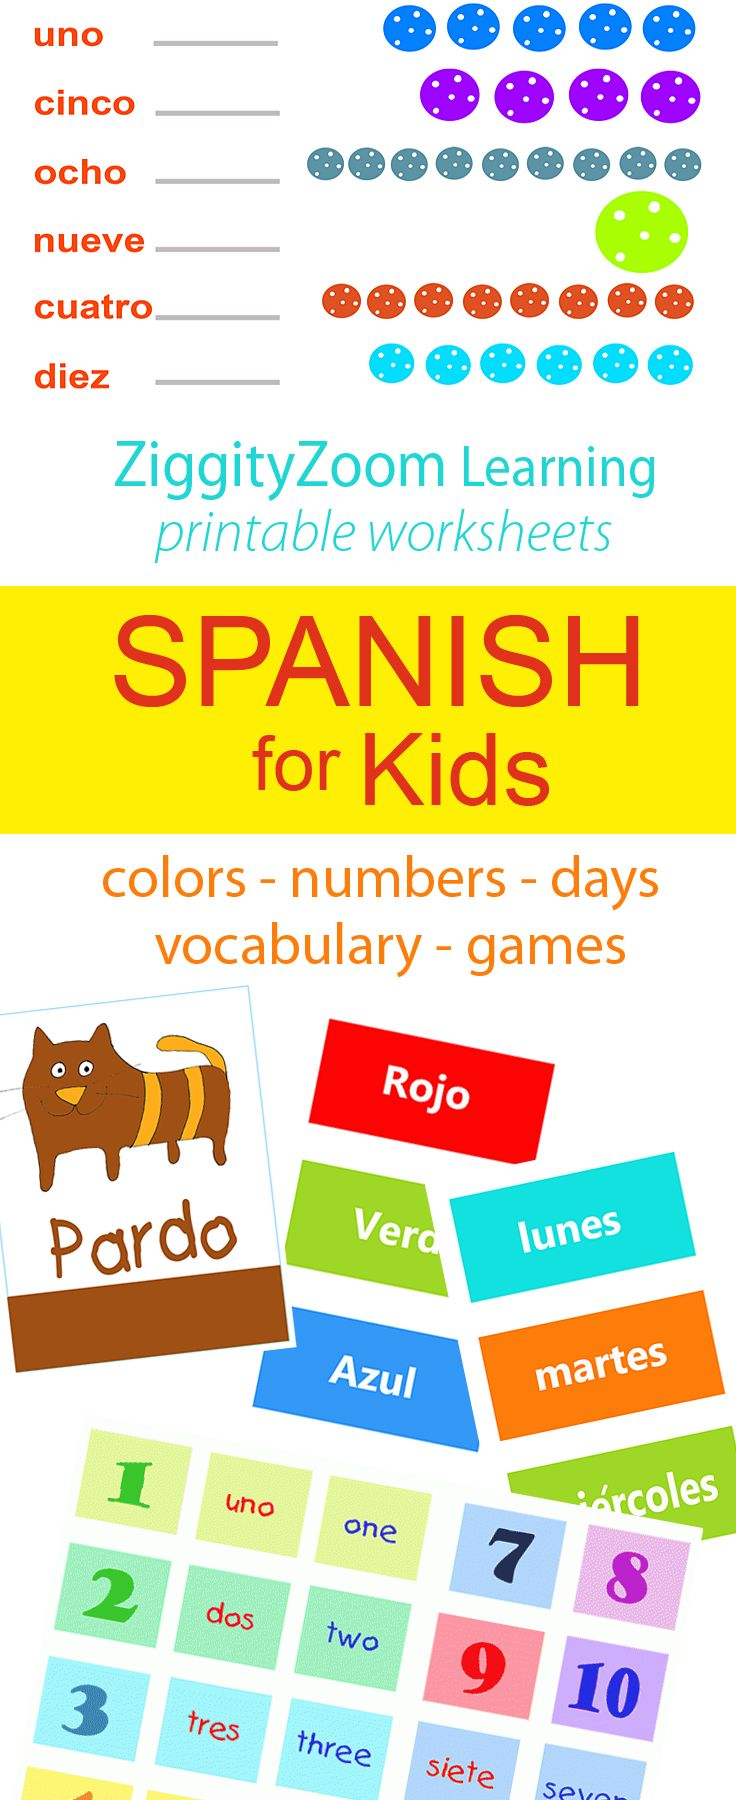 worksheet Worksheets In Spanish 10 ideas about spanish worksheets on pinterest learning and language